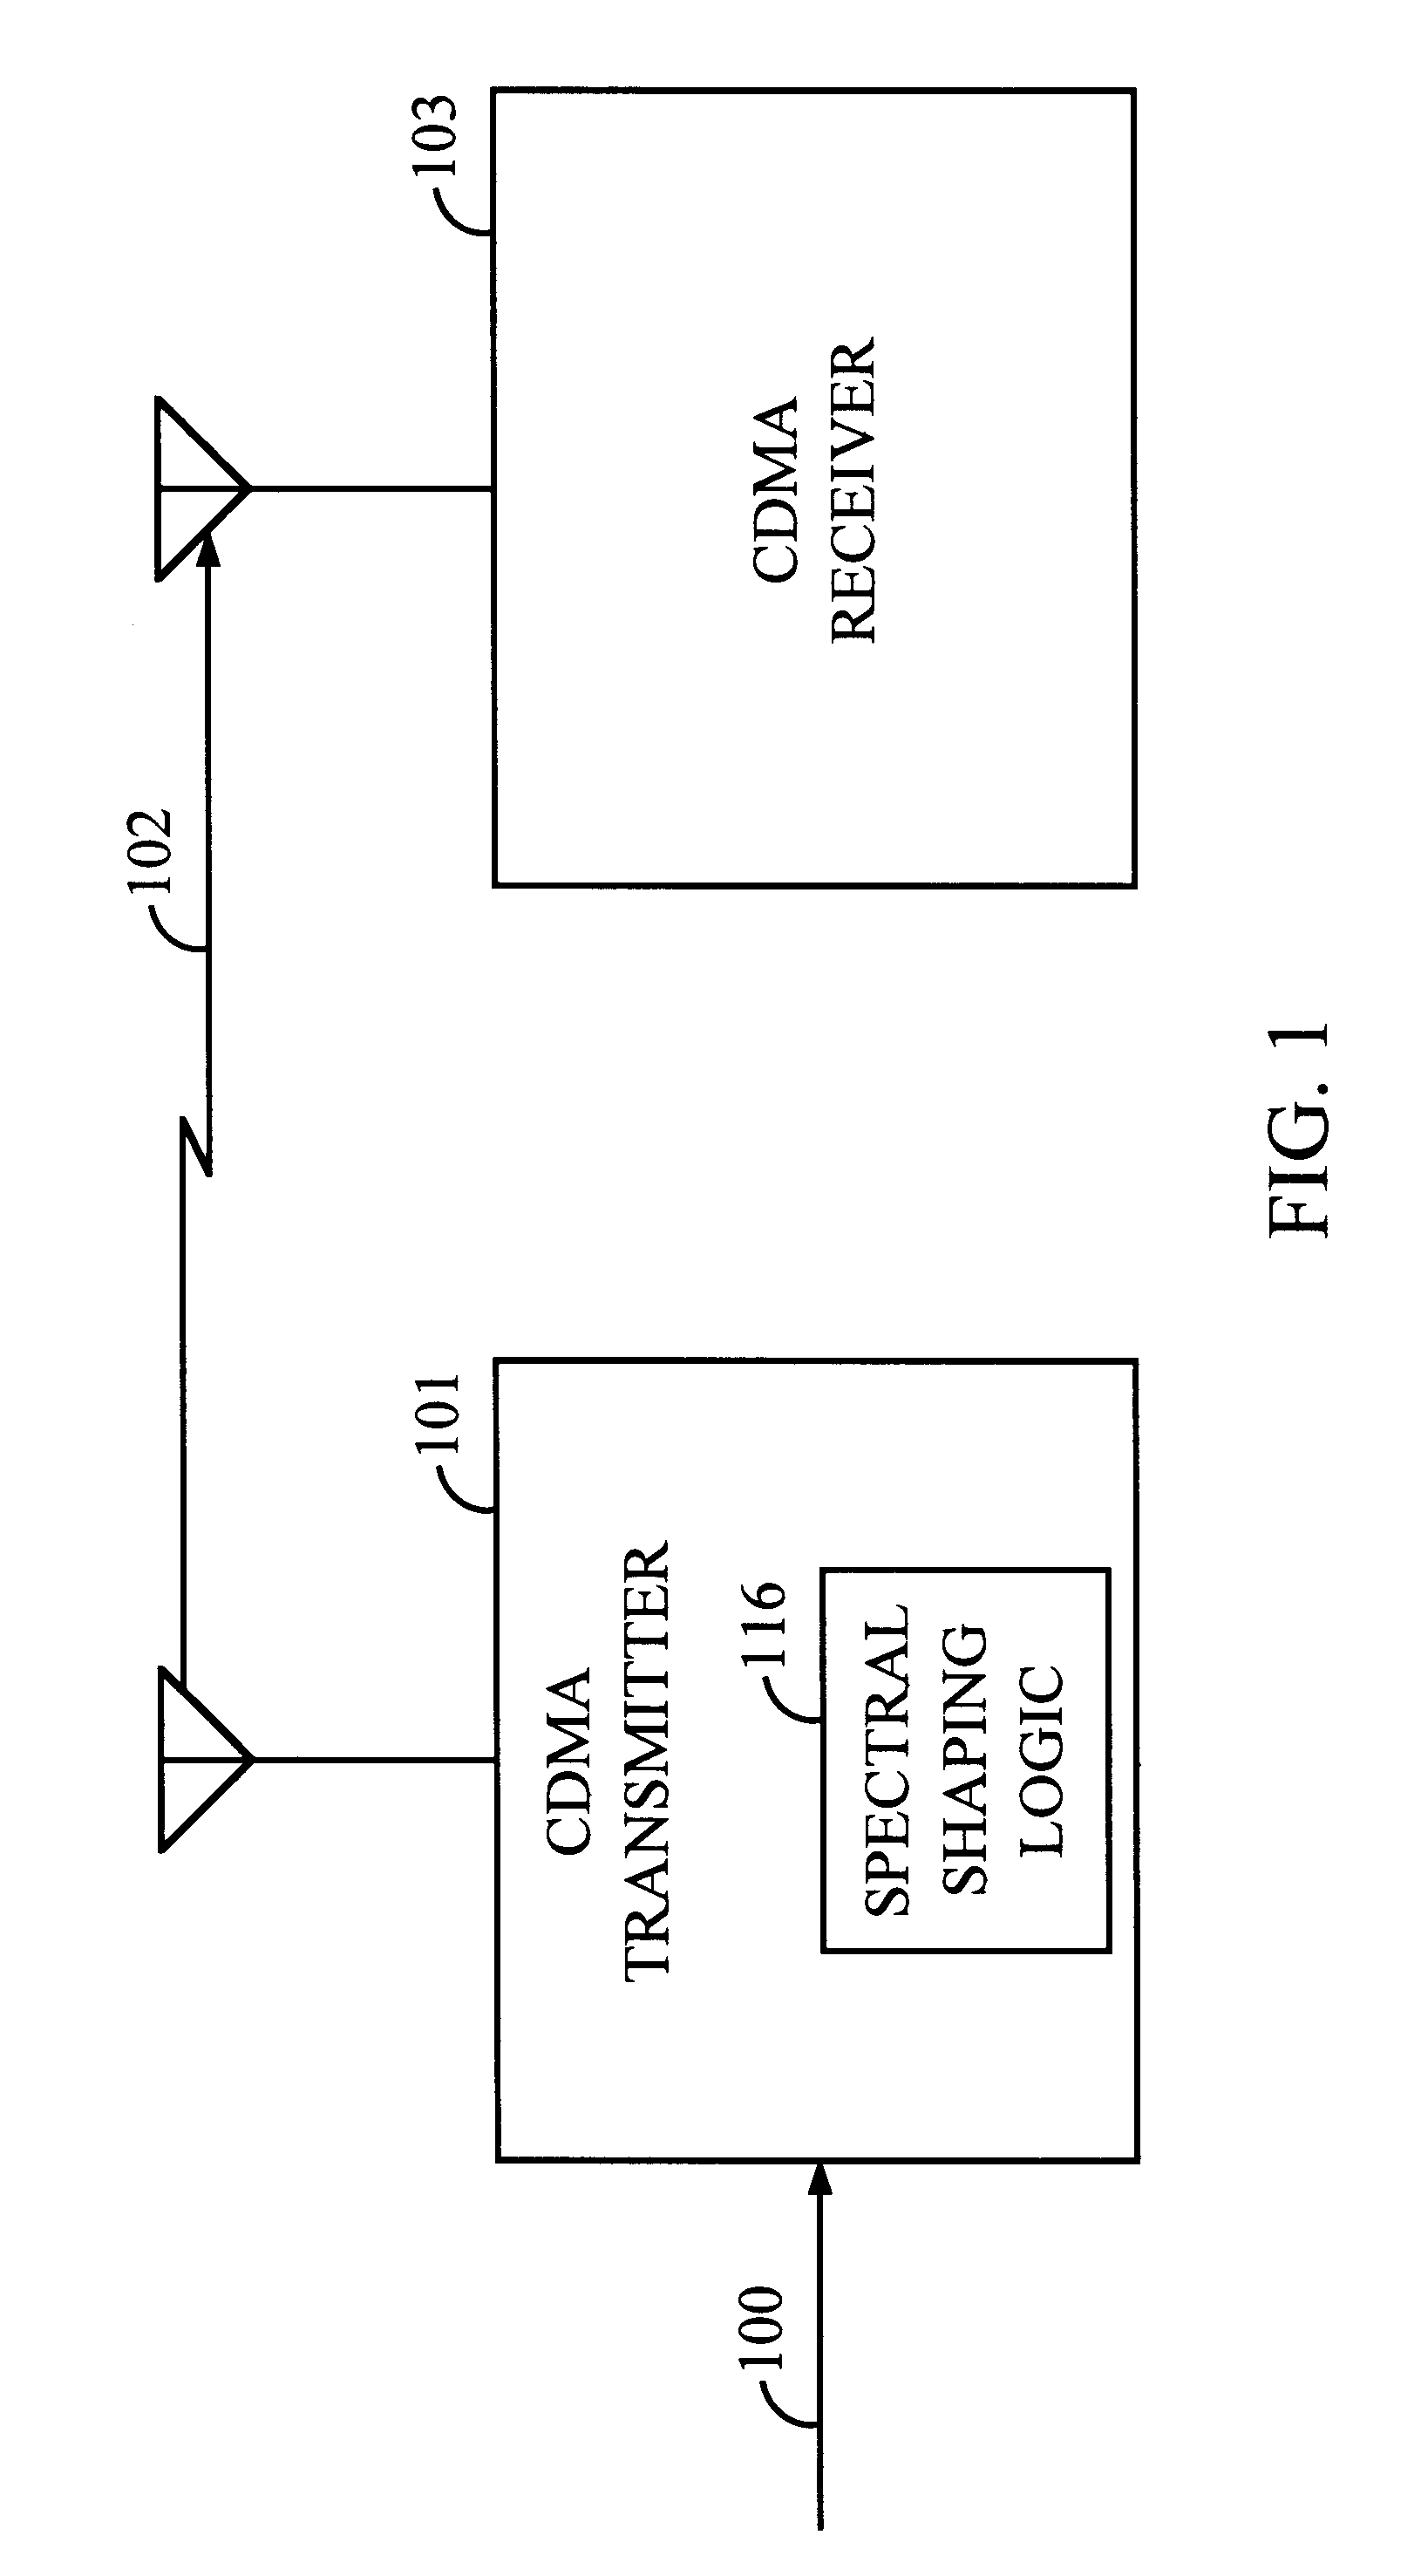 patent us6430169 - spectral shaping a cdma signal